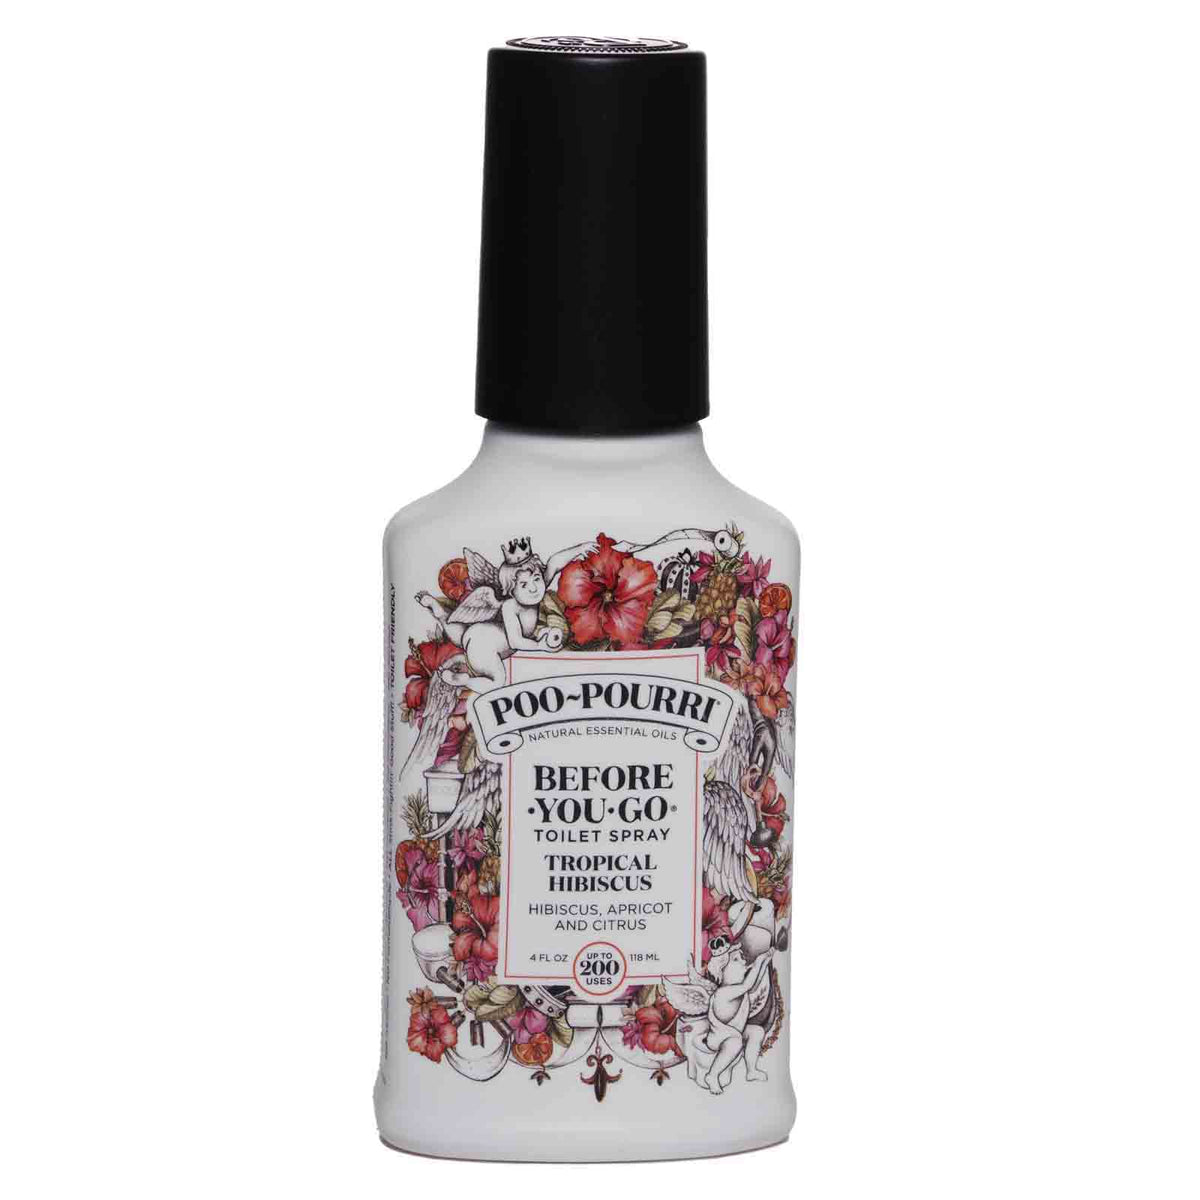 POO-POURRI | Before-You-Go Toilet Spray Tropical Hibiscus-4oz (24/cs)